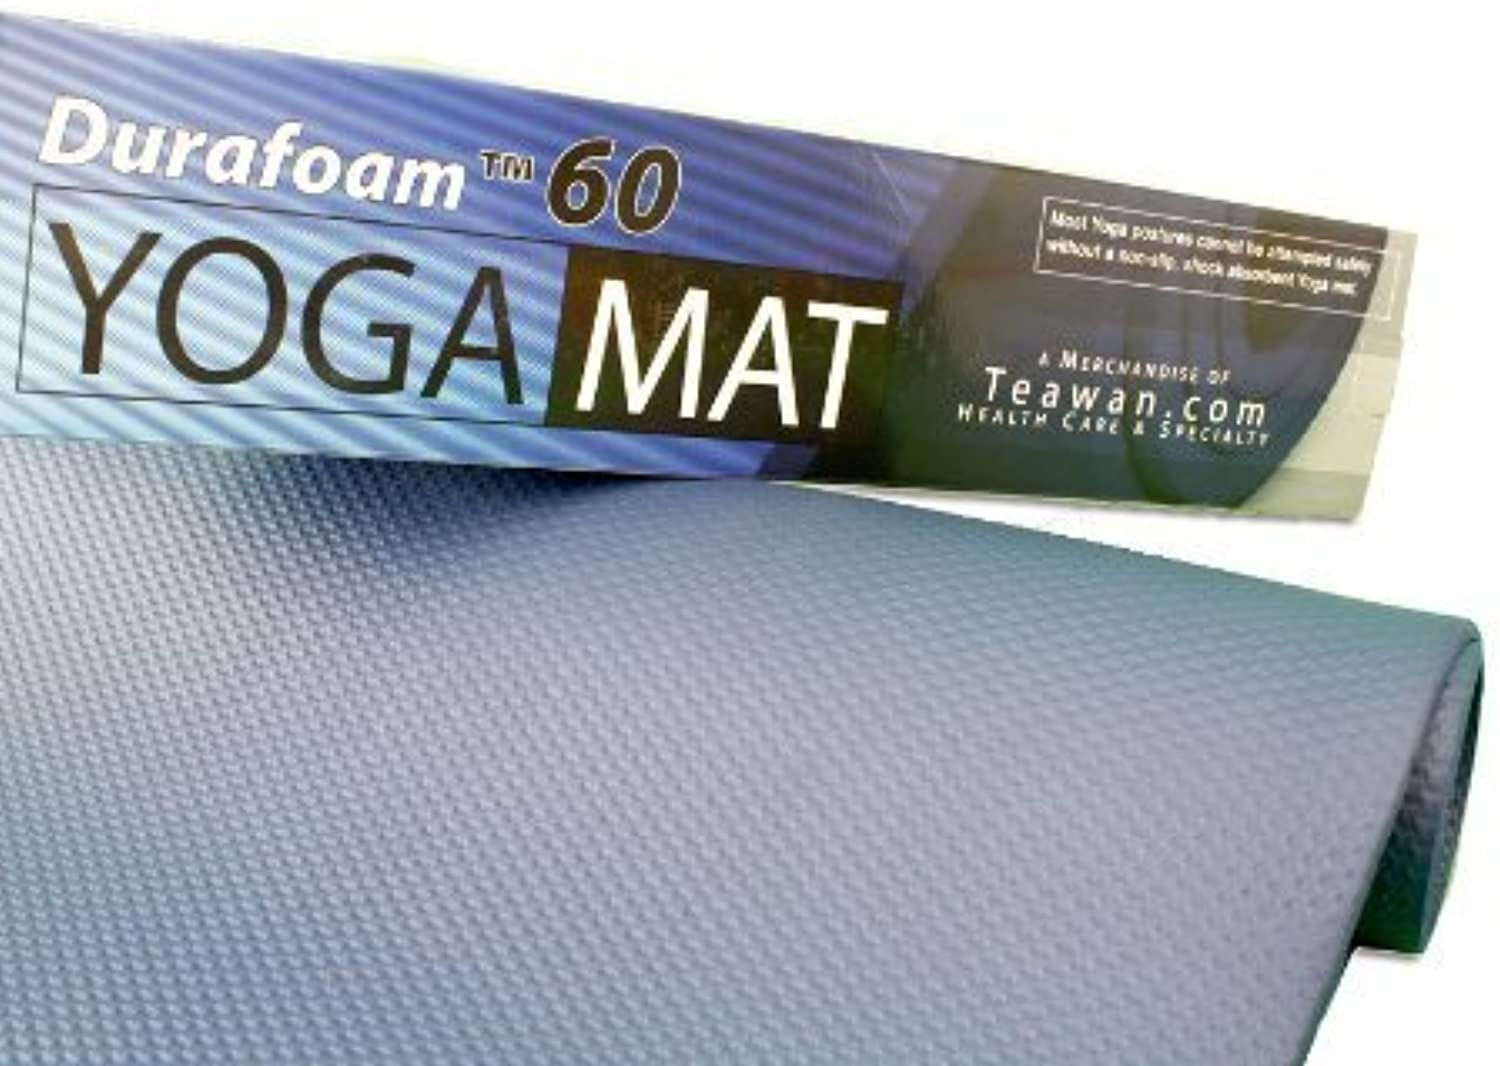 Extra Thick Yoga   Exercise   Pilates Mat  Durafoam 60 by GlobMar